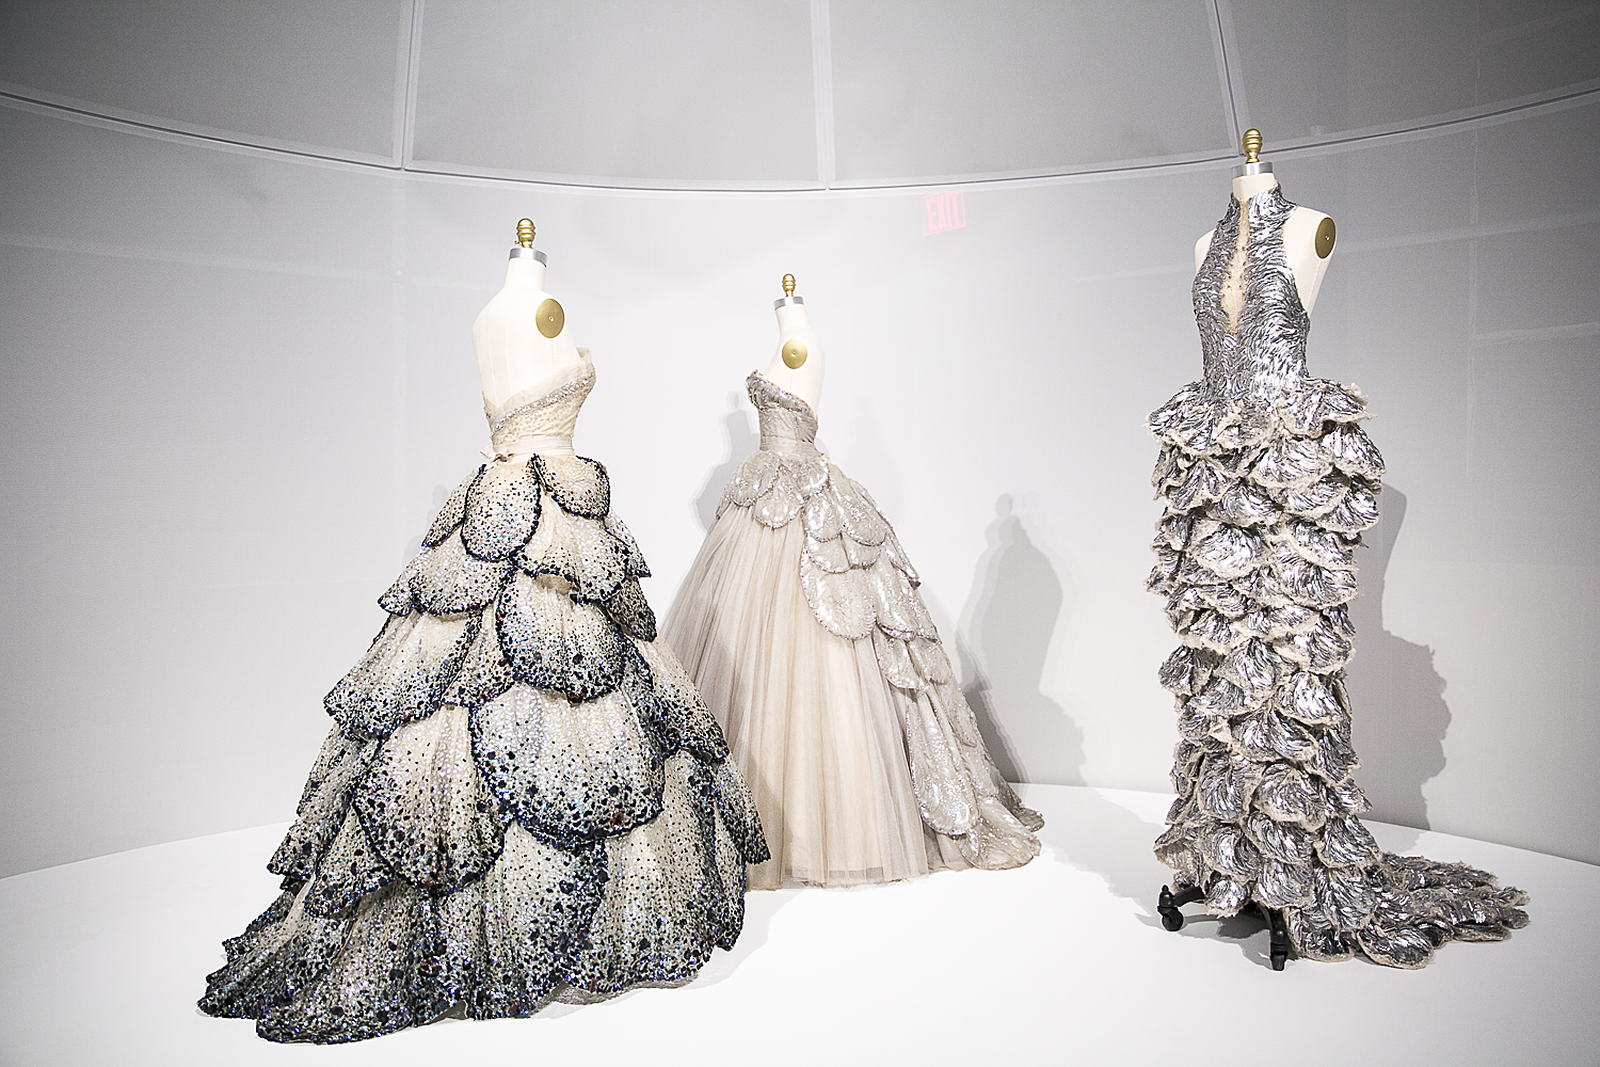 Met_Manus_Machina_Fashion_Exhibition_New_York_5.png